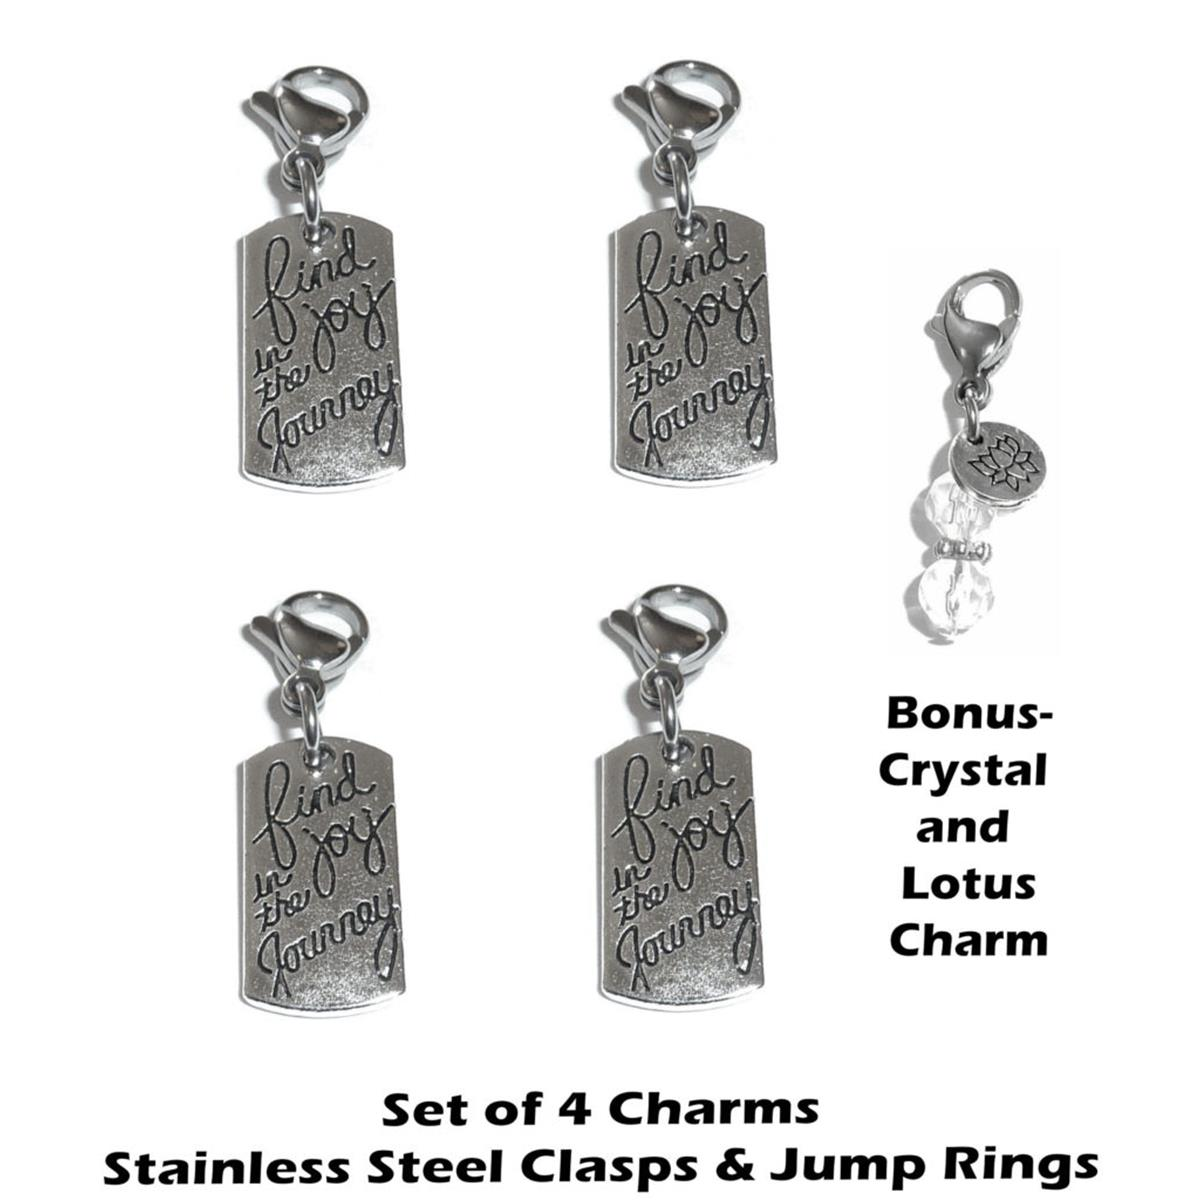 4 pack find joy clip on charms - inspirational charms